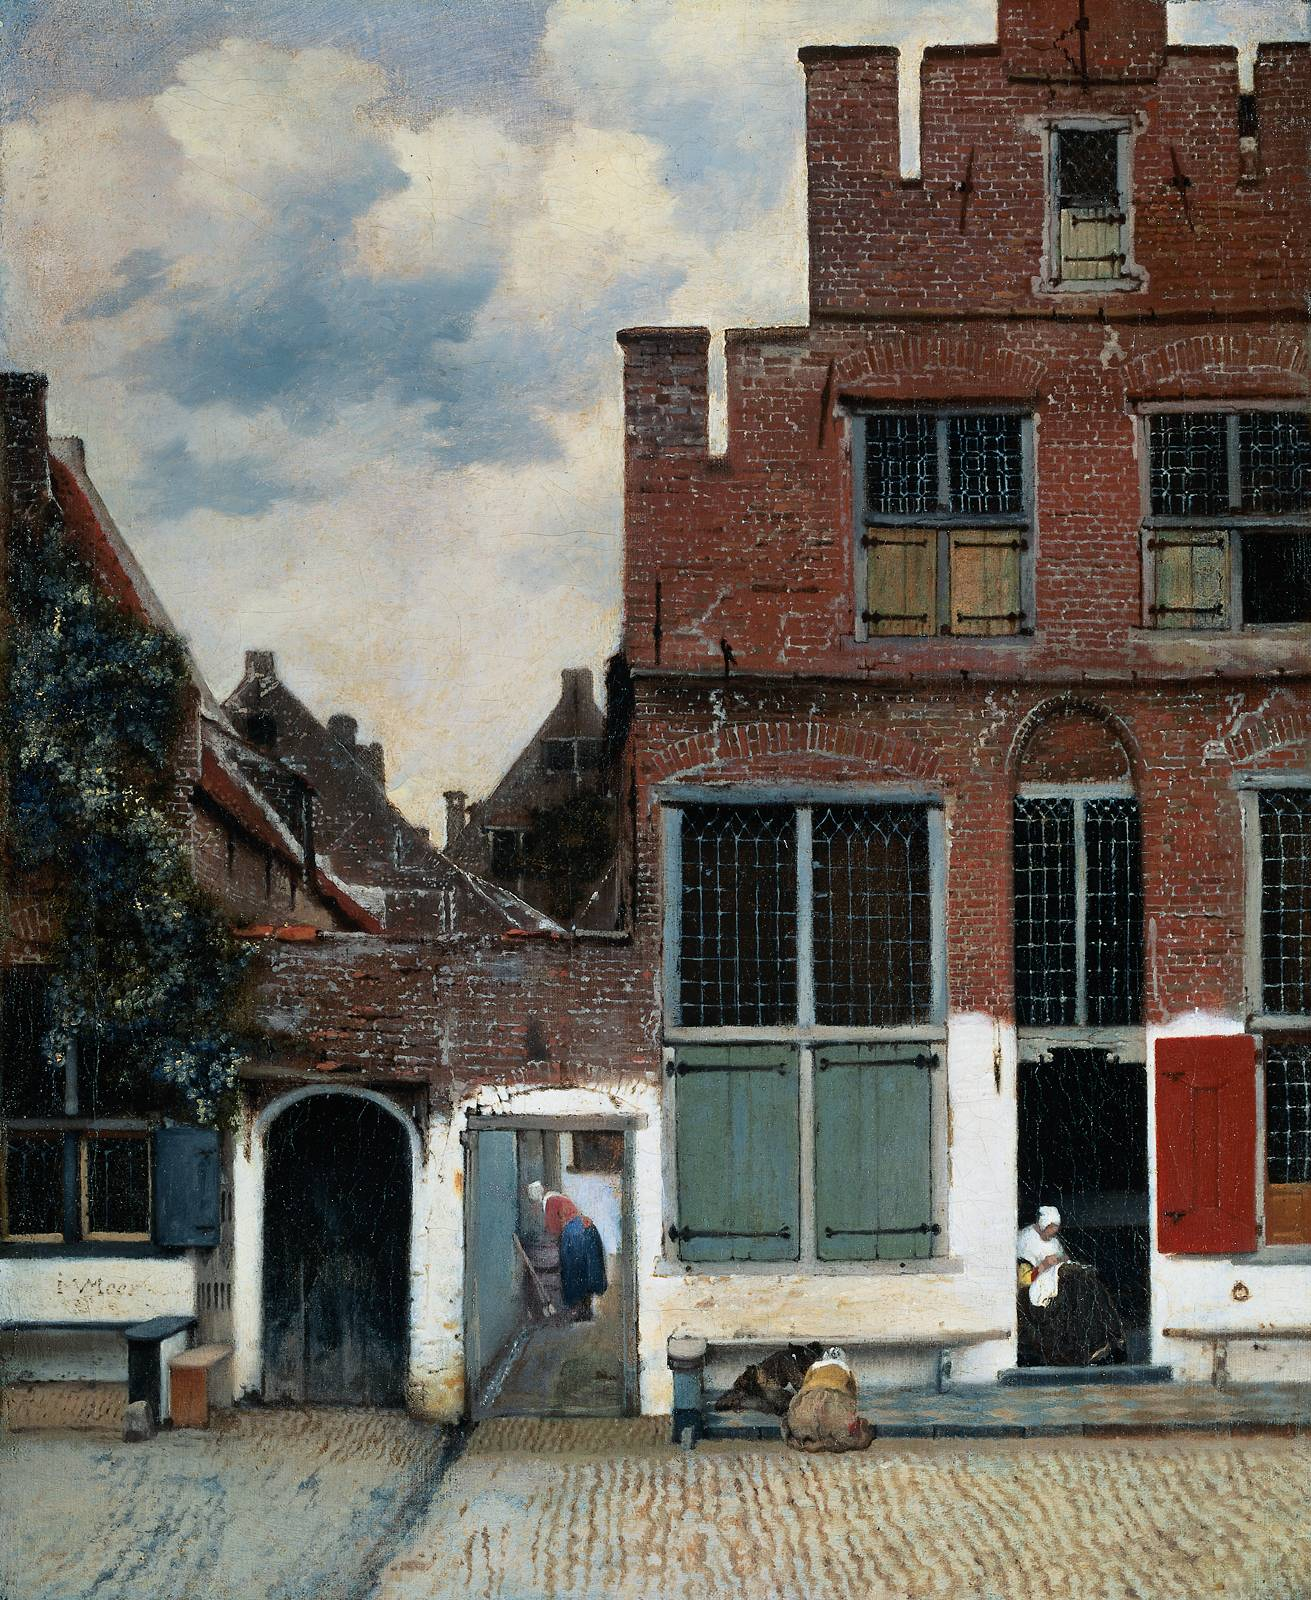 Jan Vermeer Van Delft, View of Houses in Delft, known as 'The Little Street', 1657-8